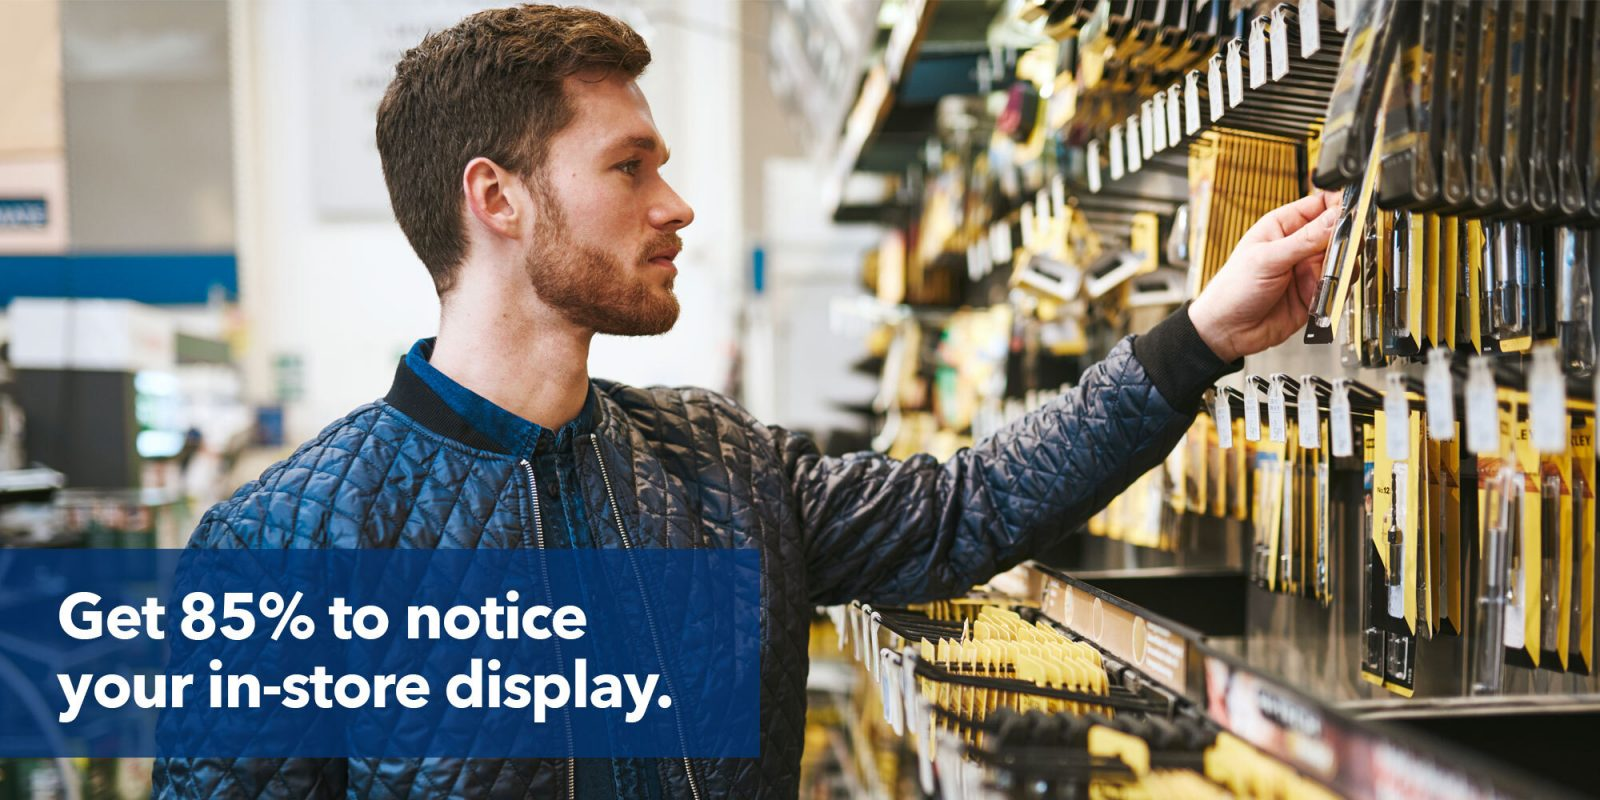 Case study: Get 85% to notice your in-store display.